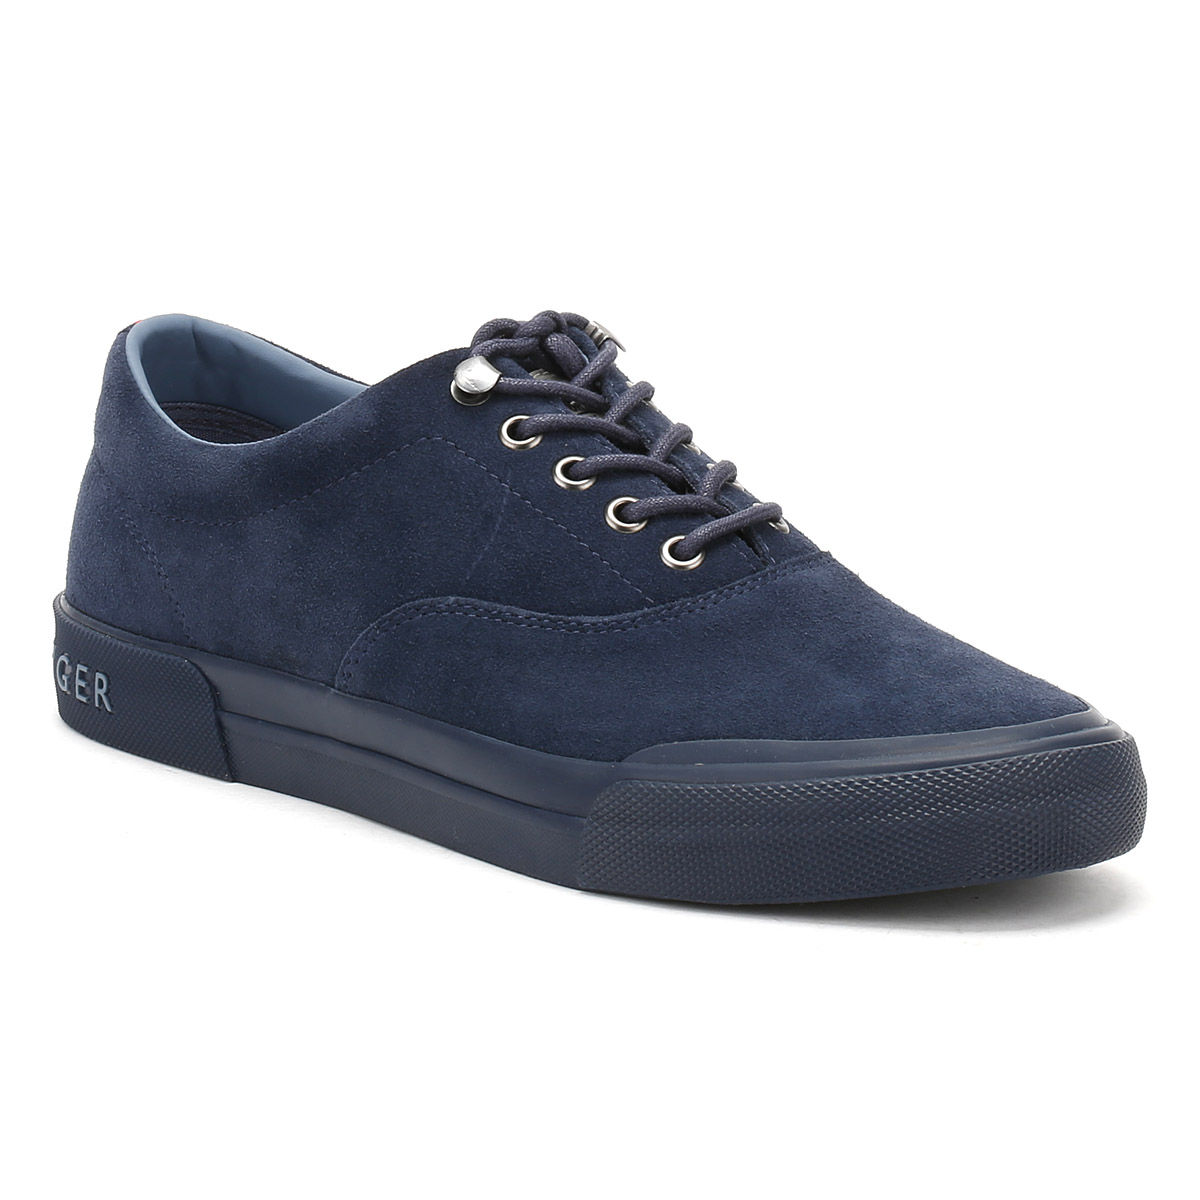 Womens Navy Blue Lace Up Shoes